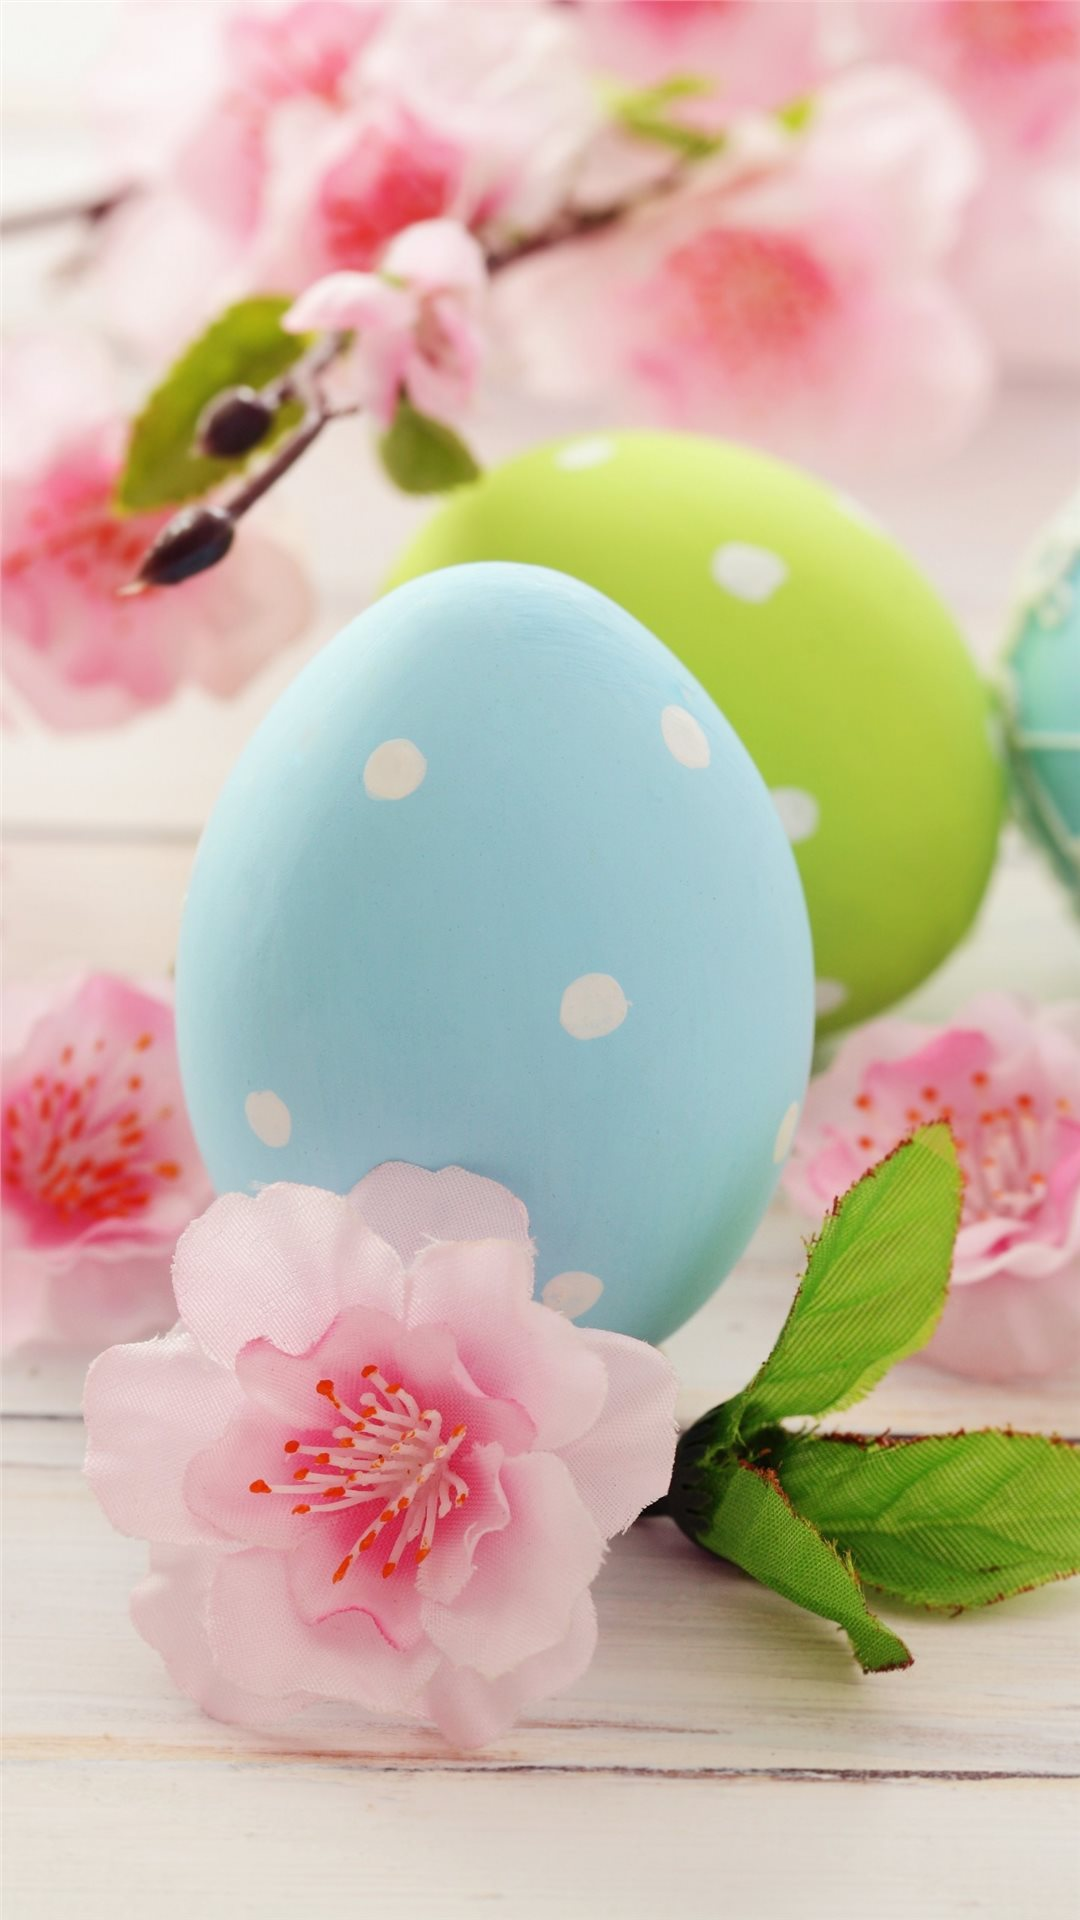 Easter Eggs Flowers 5k Celebrations 5569 Iphone Wallpapers Free